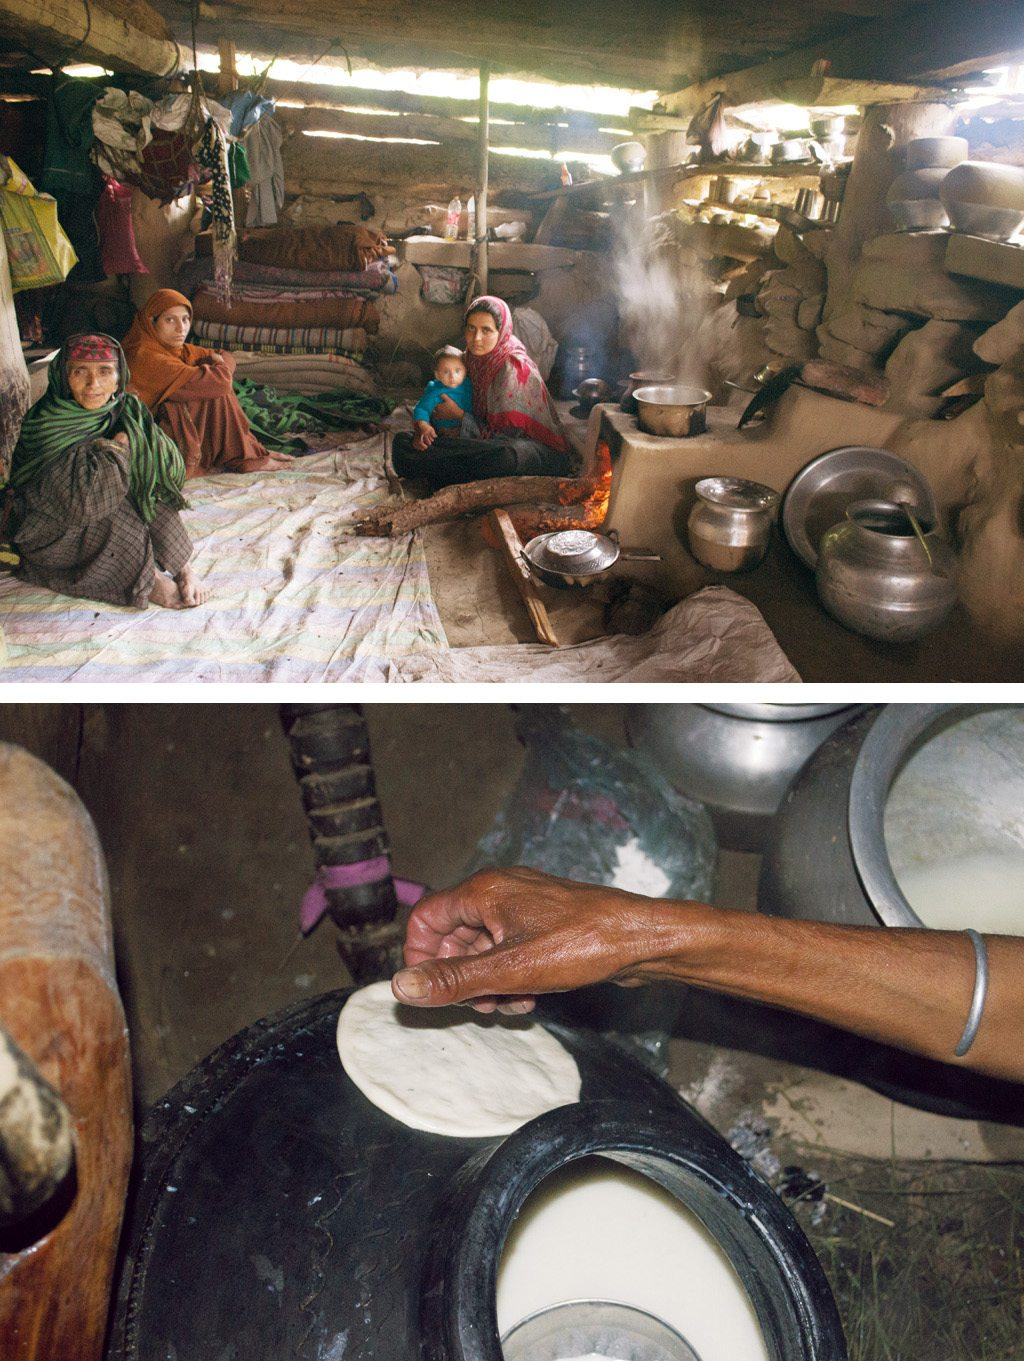 Niyaji and her family take a mid-morning break in their kitchen (top). Later, freshly made kalari (bottom) is shaped like local bread and set aside to cool off. Photos: Aditya Raghavan